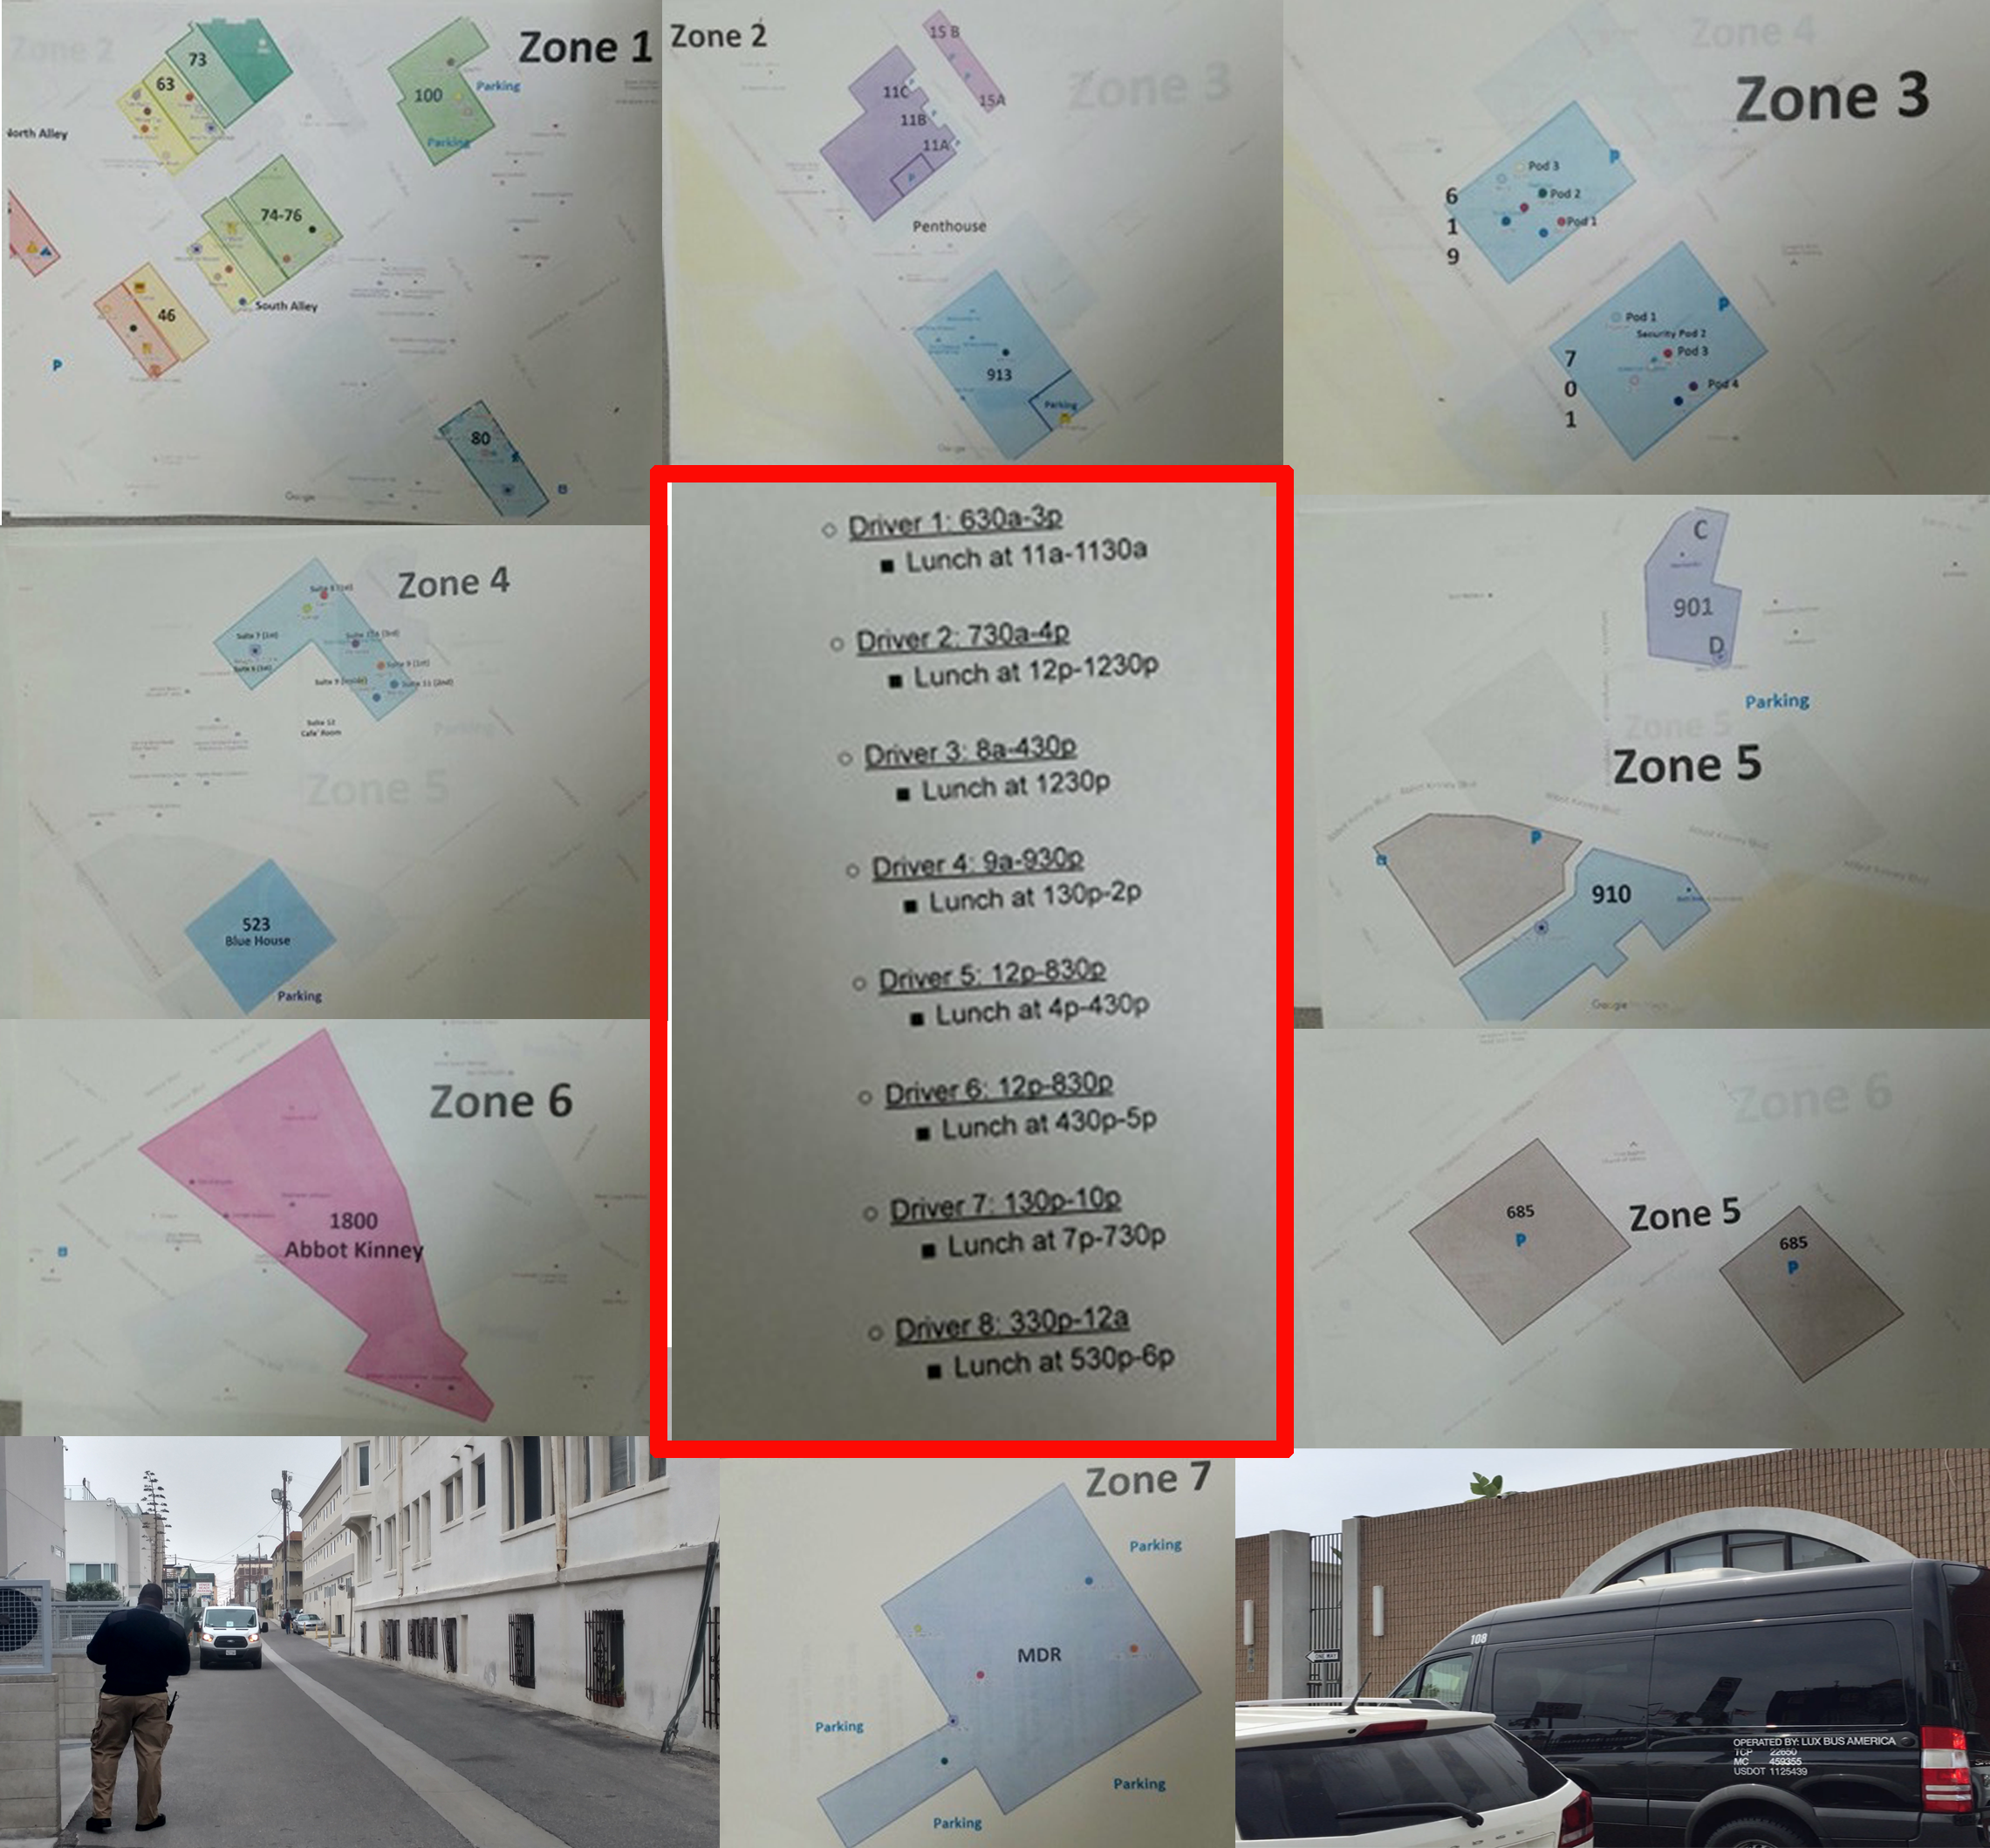 544 van trips across Venice each day - Snap has 8 vans driving 17 hours a day!Vans arrive at stops approx every 15 minutes (we timed it at Brooks + Speedway). This is too much for our small town!Snap breaks Venice into 6 Zones with Zone 7 for parking in Marina Del Rey. This van schedule that was found laying around Venice.